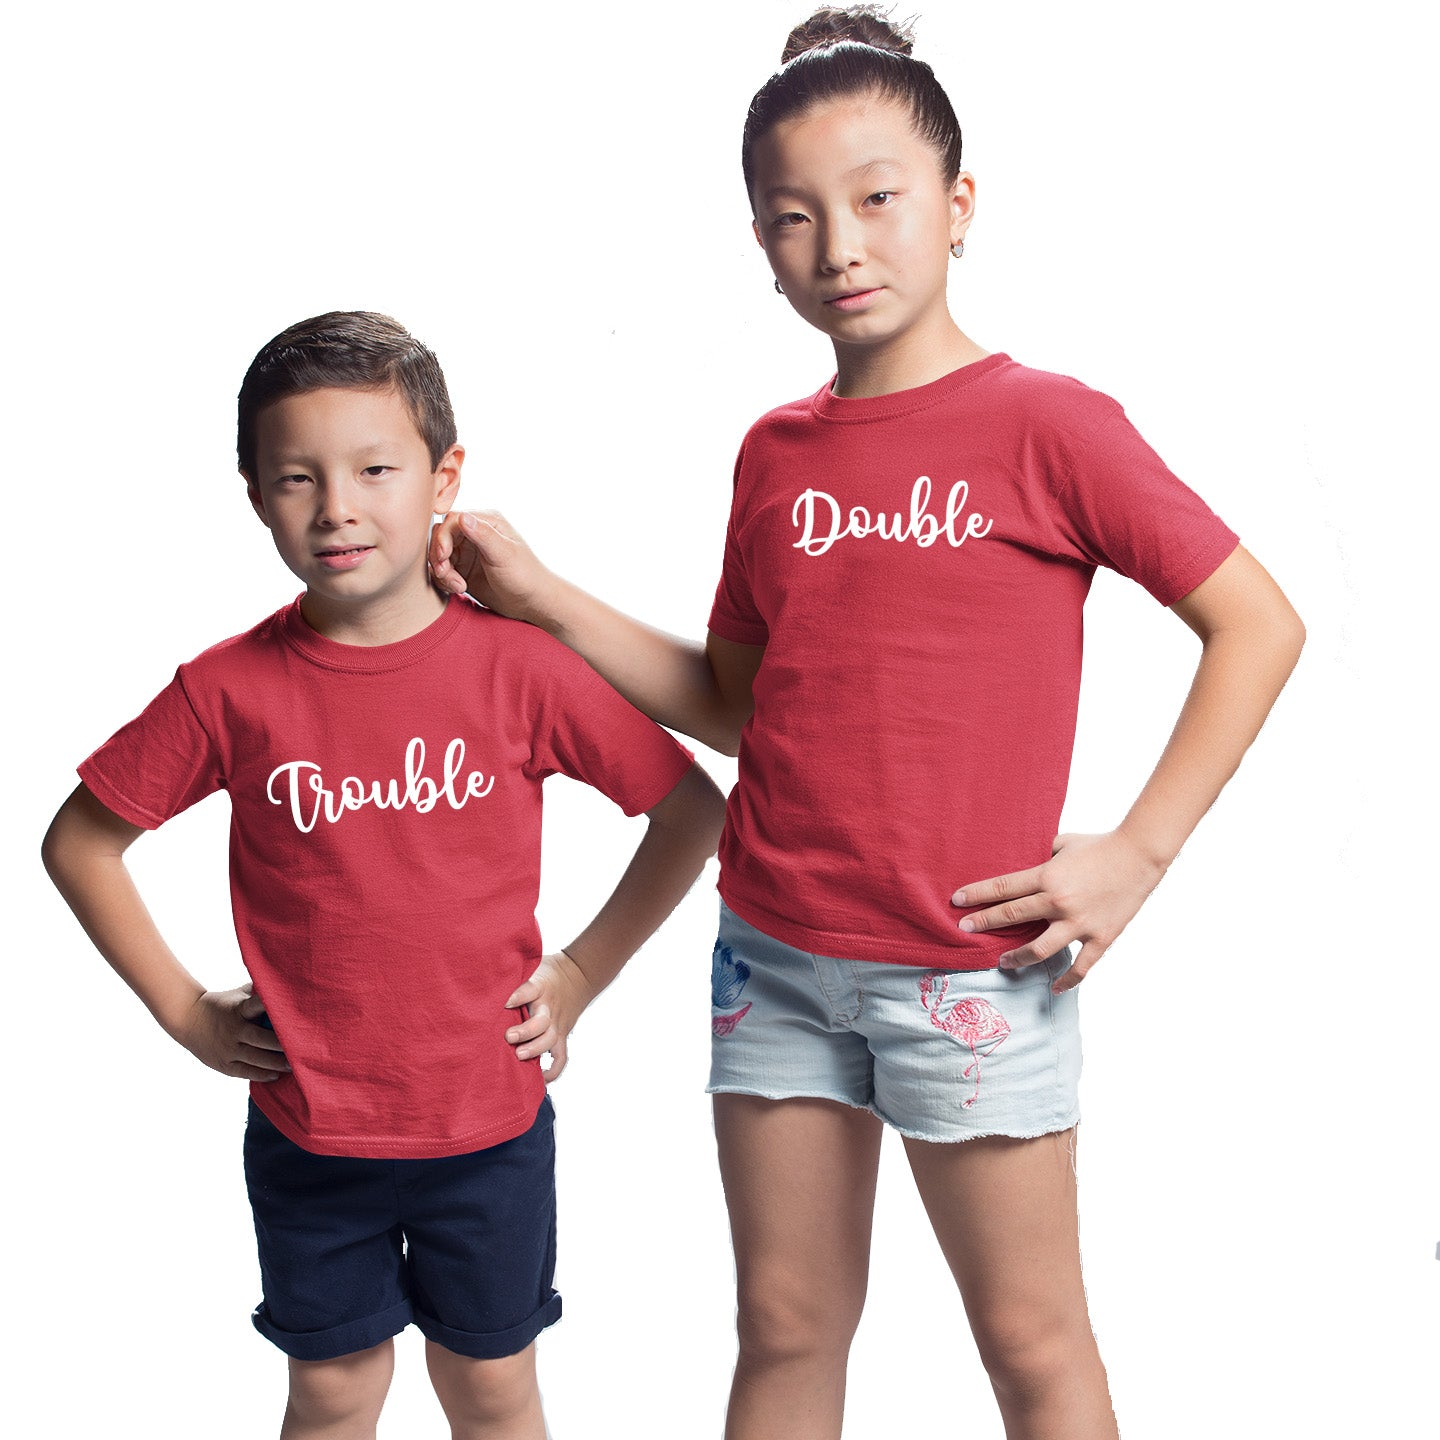 Sprinklecart Double Trouble Matching Cotton Kids T Shirt (Red)